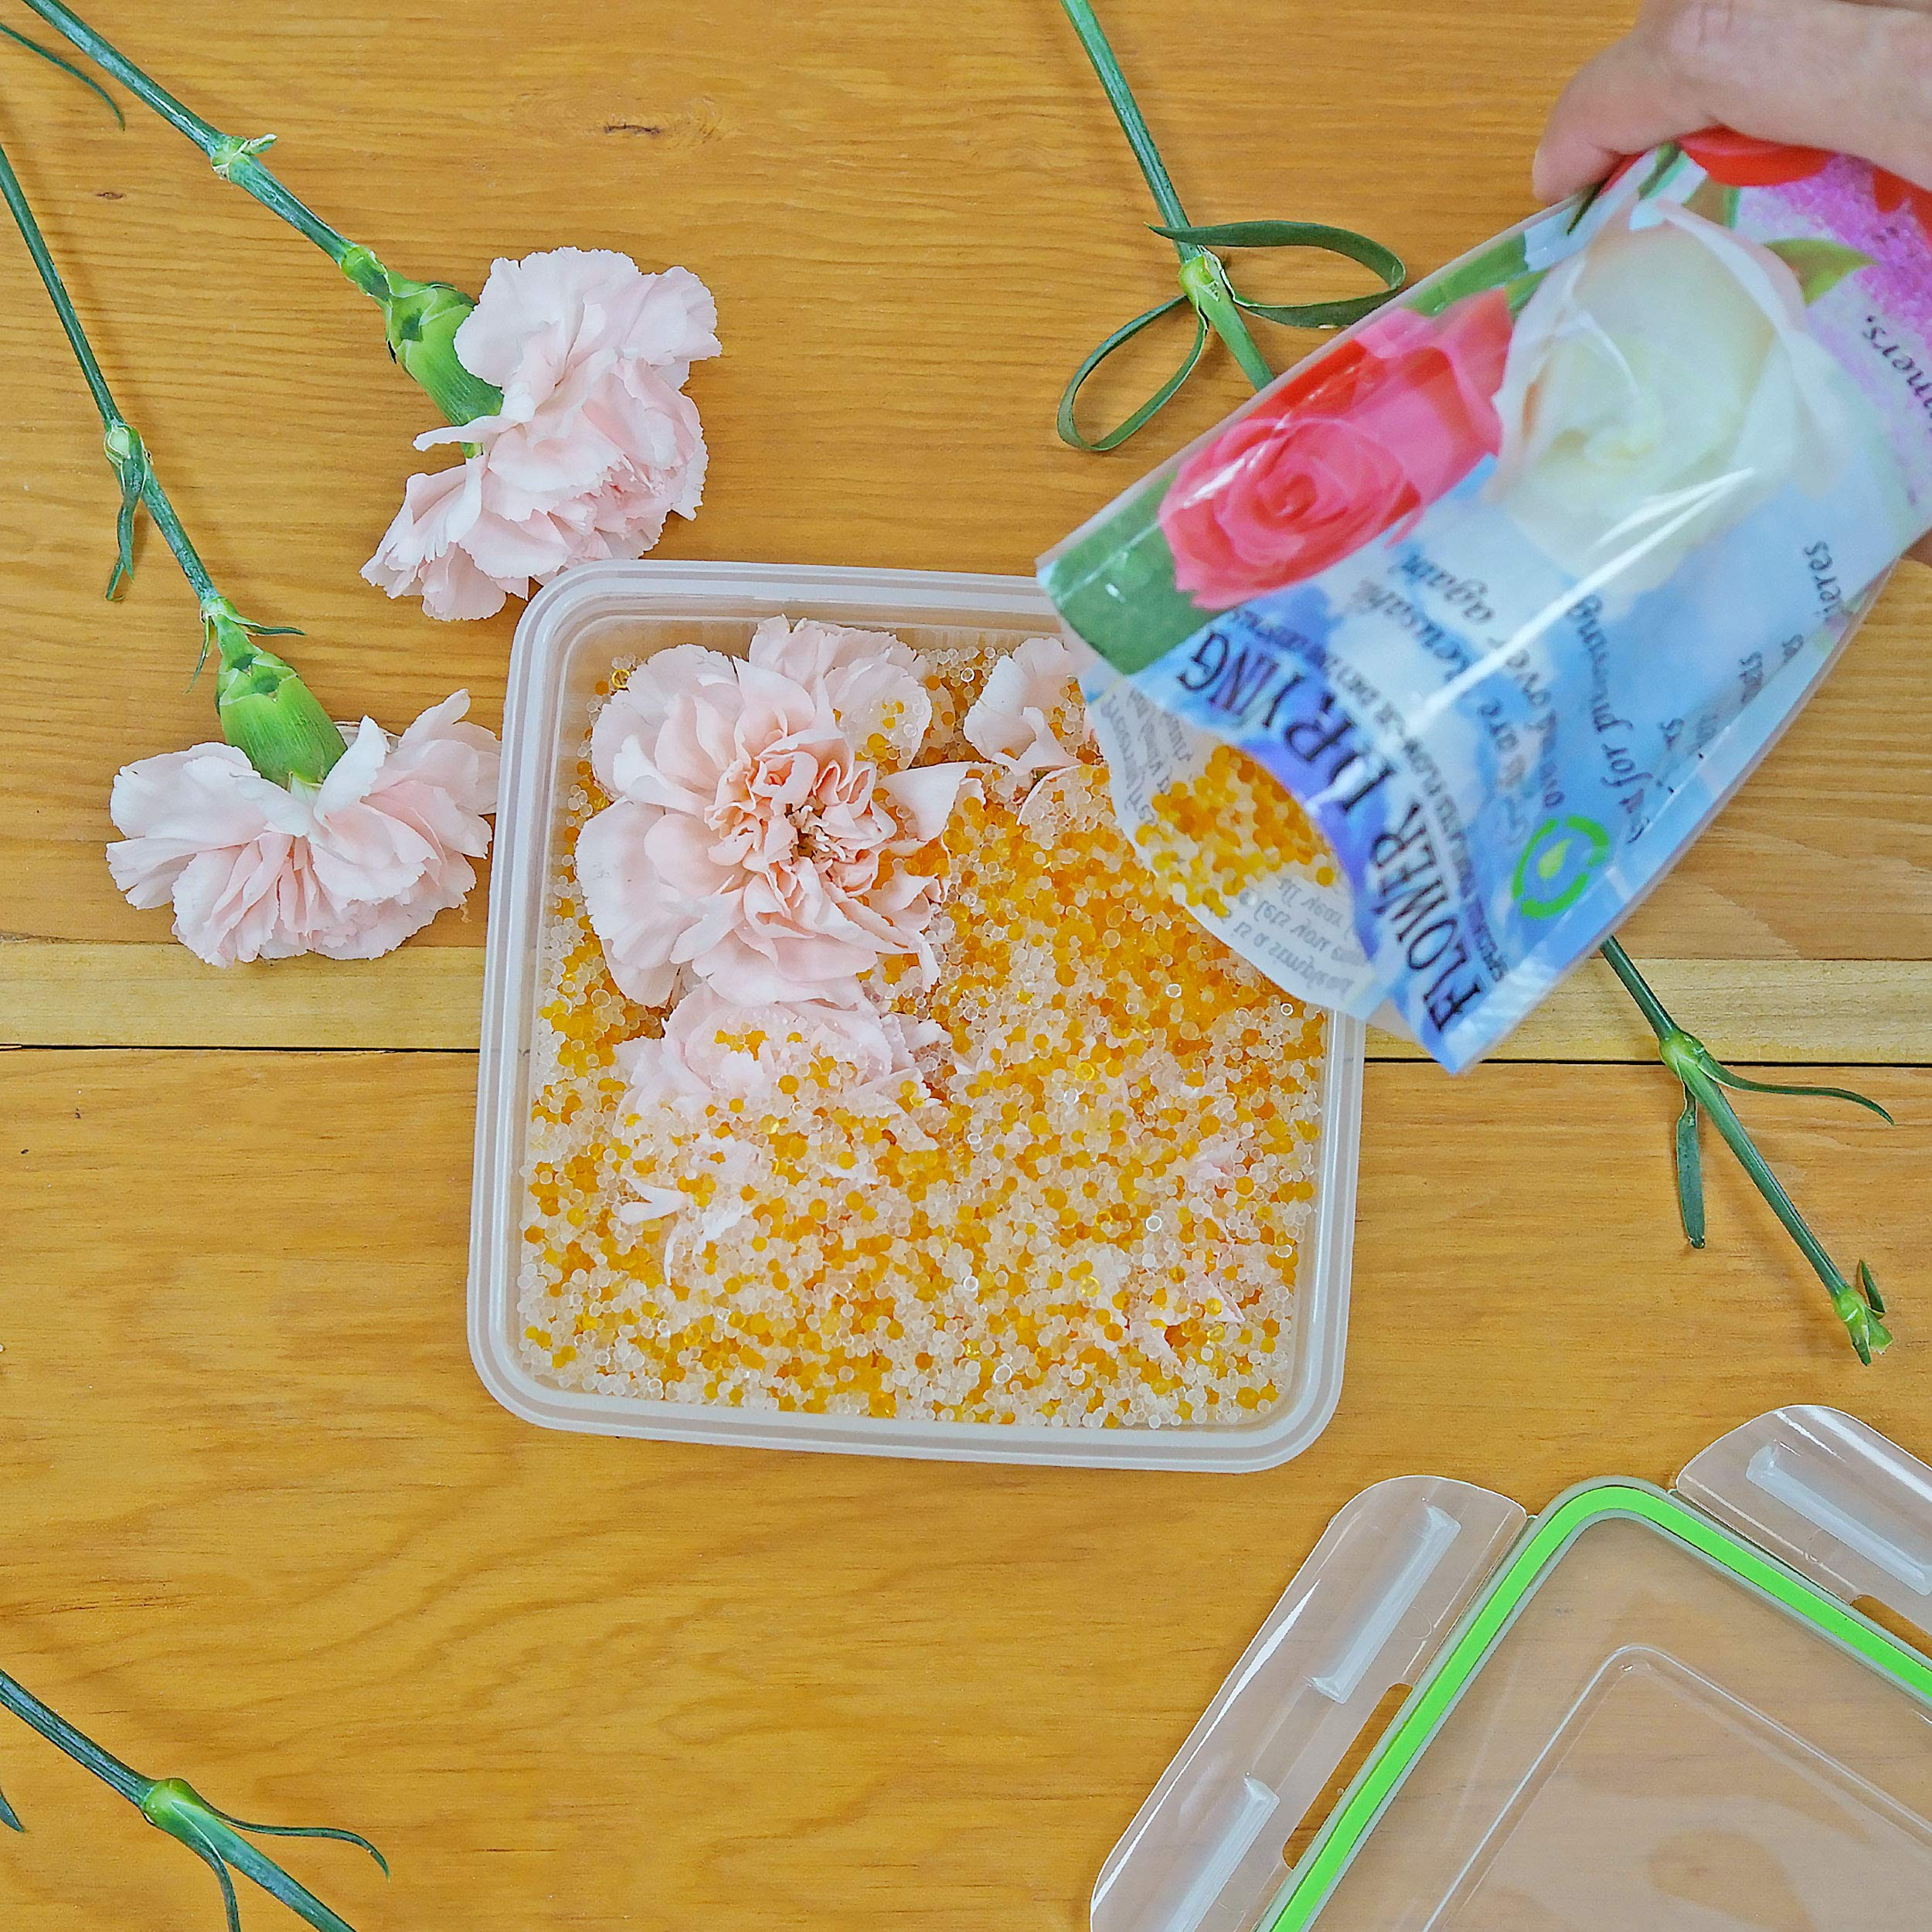 Dry-Packs Flower Drying Crystals Silica Gel